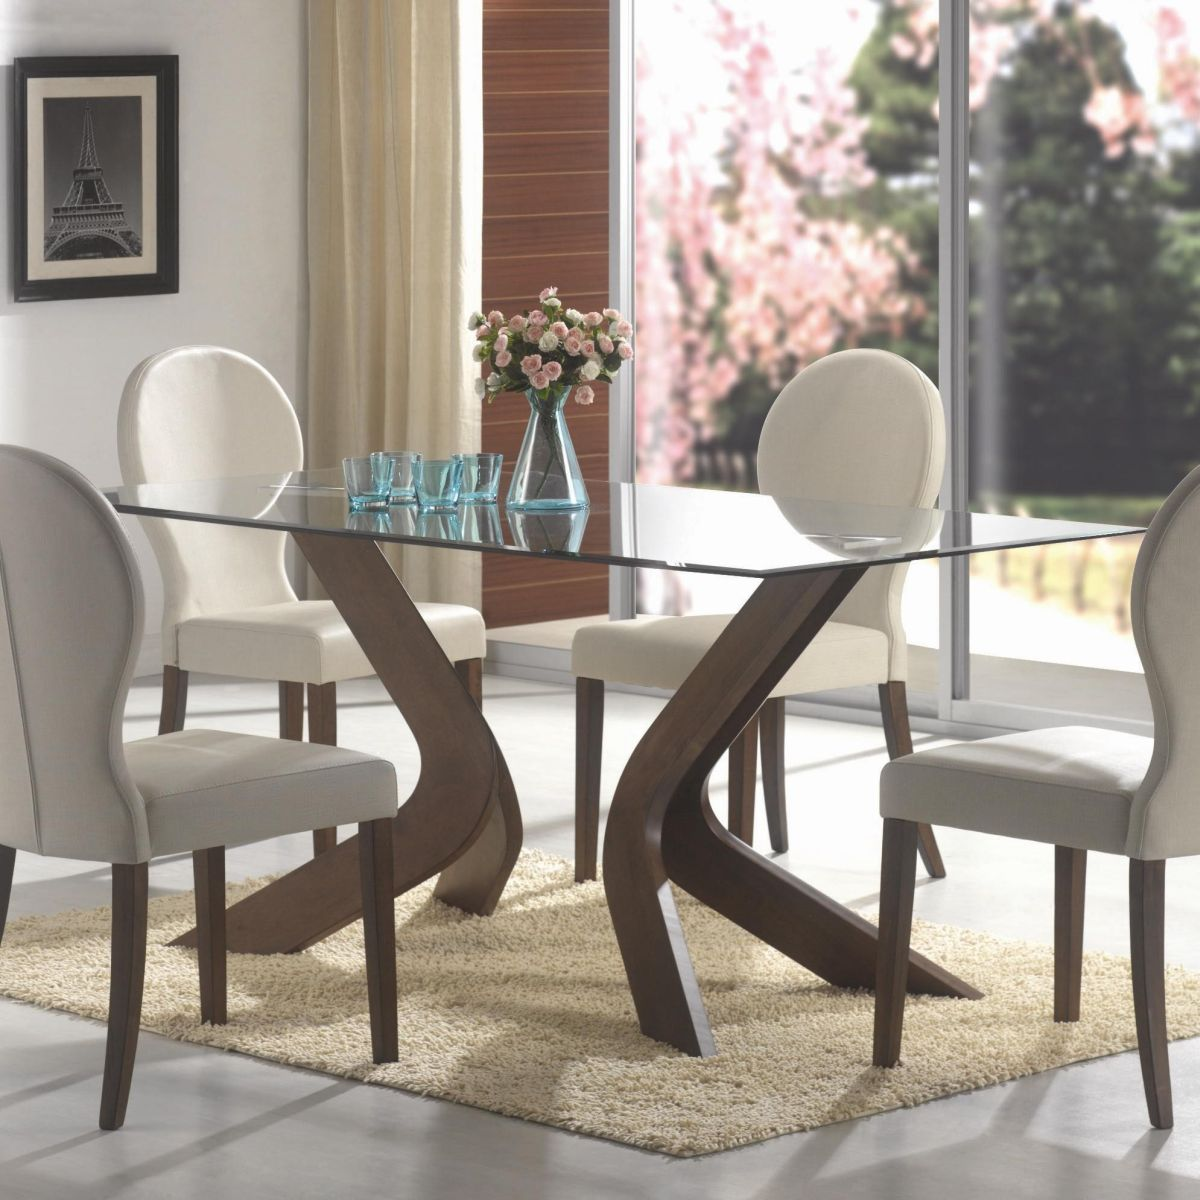 Oval back dining chairs and glass top table